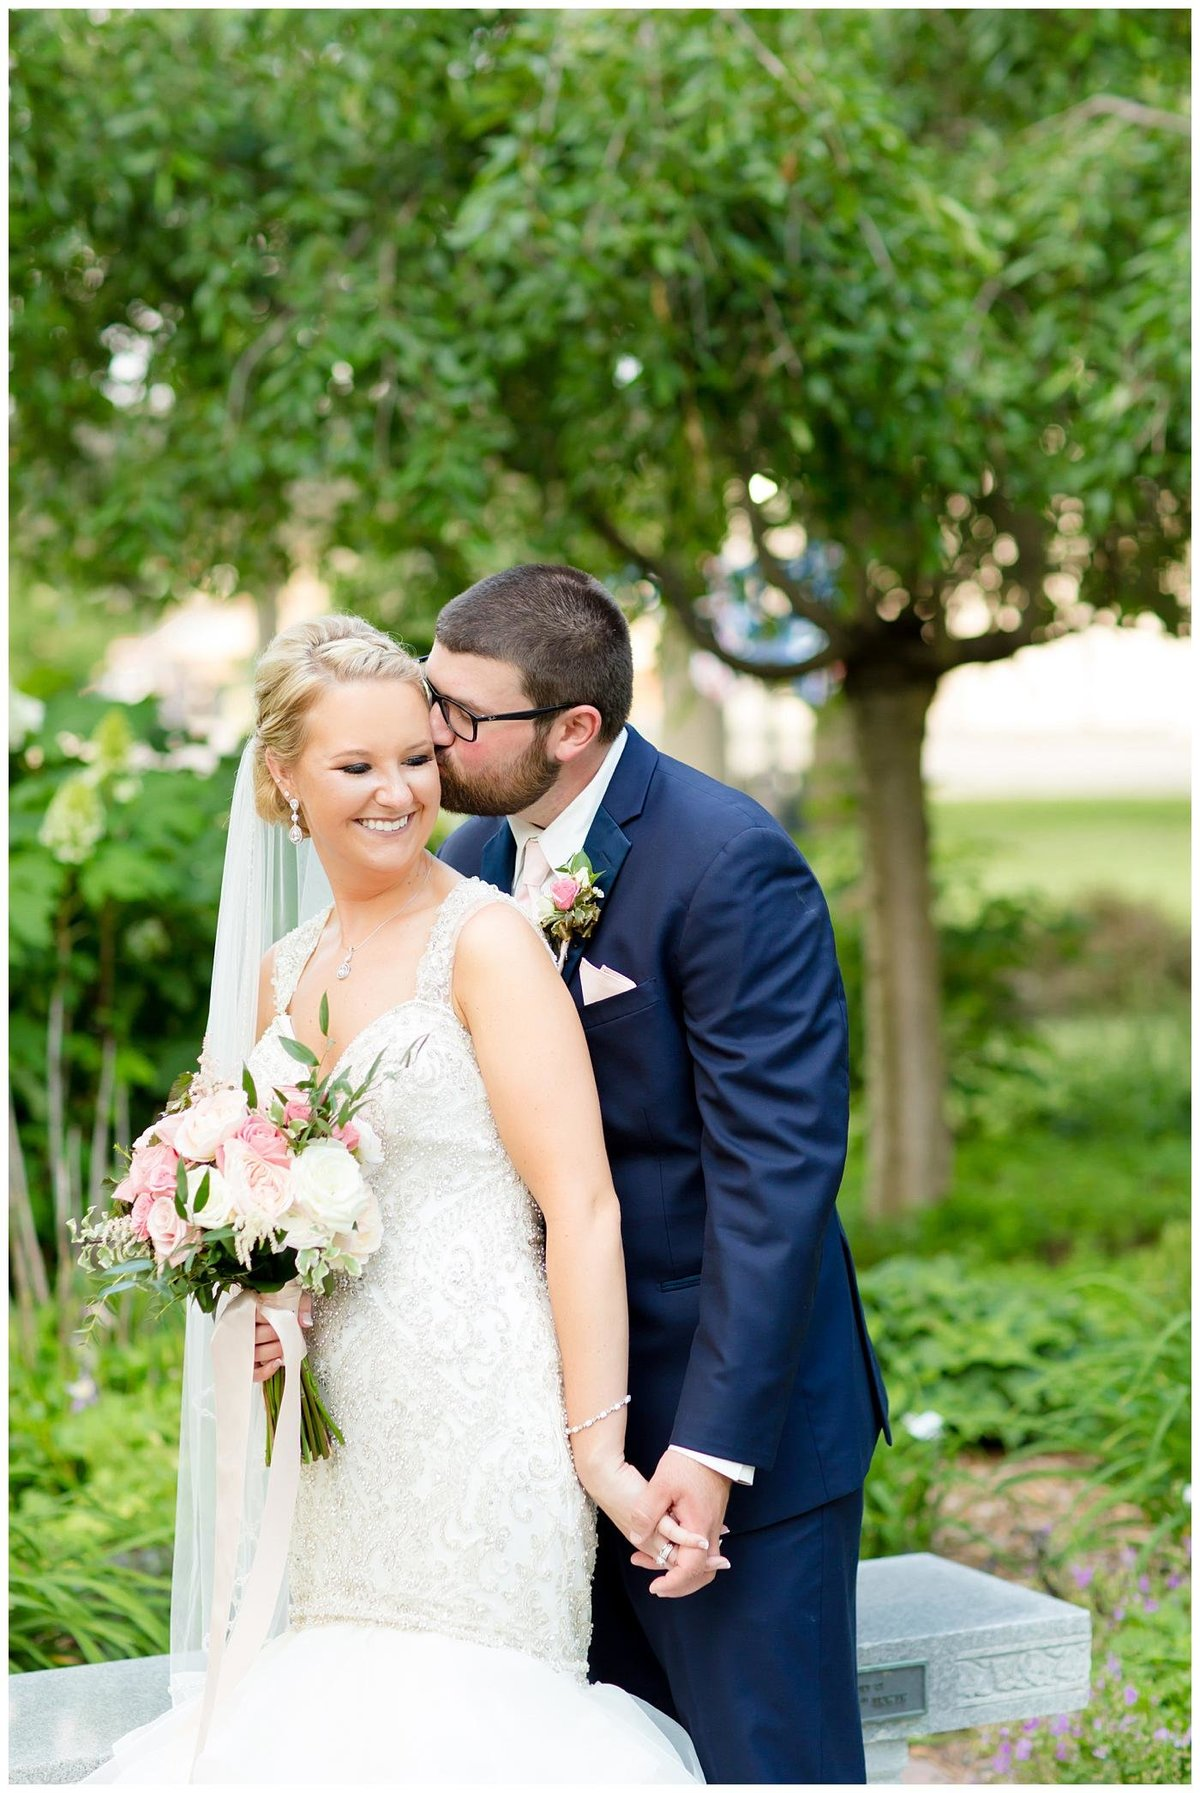 Central Illinois Wedding Photographer | Quincy, IL Wedding Photographer |  Creative Touch Photography_4695